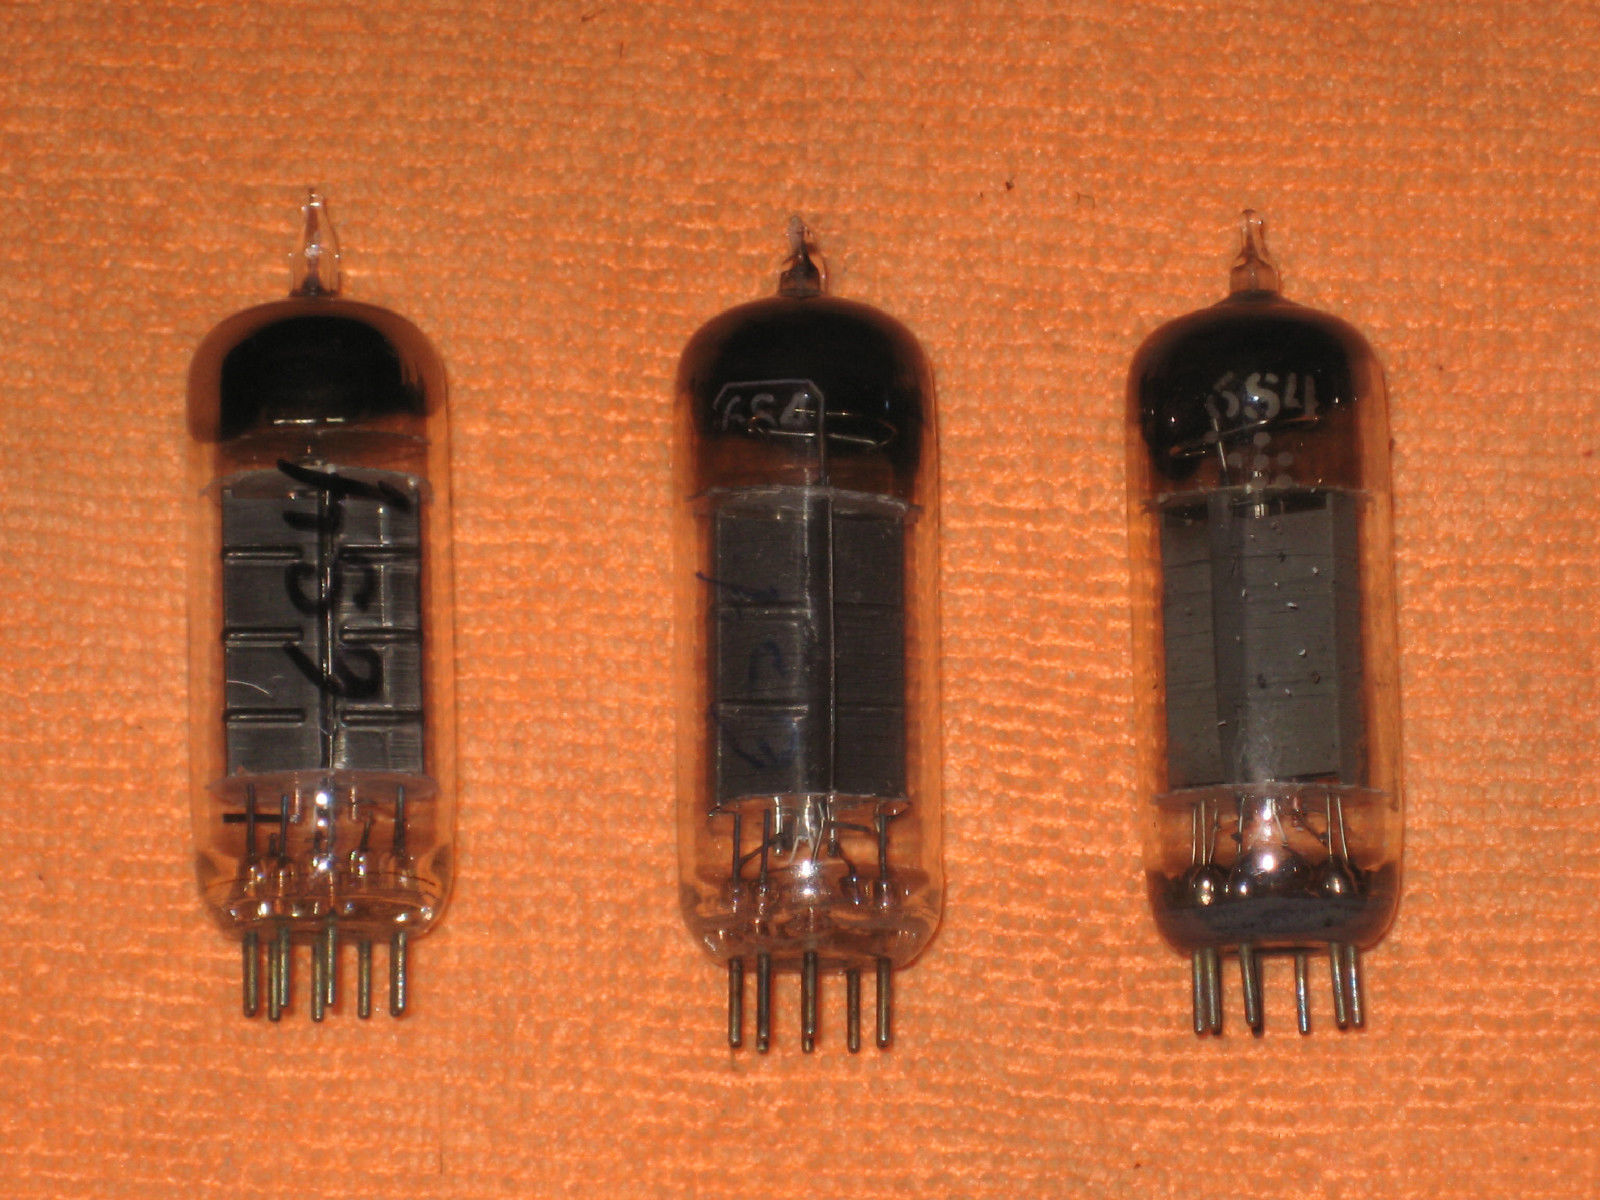 Vintage Radio Vacuum Tube (one): 6S4 - Tested Good